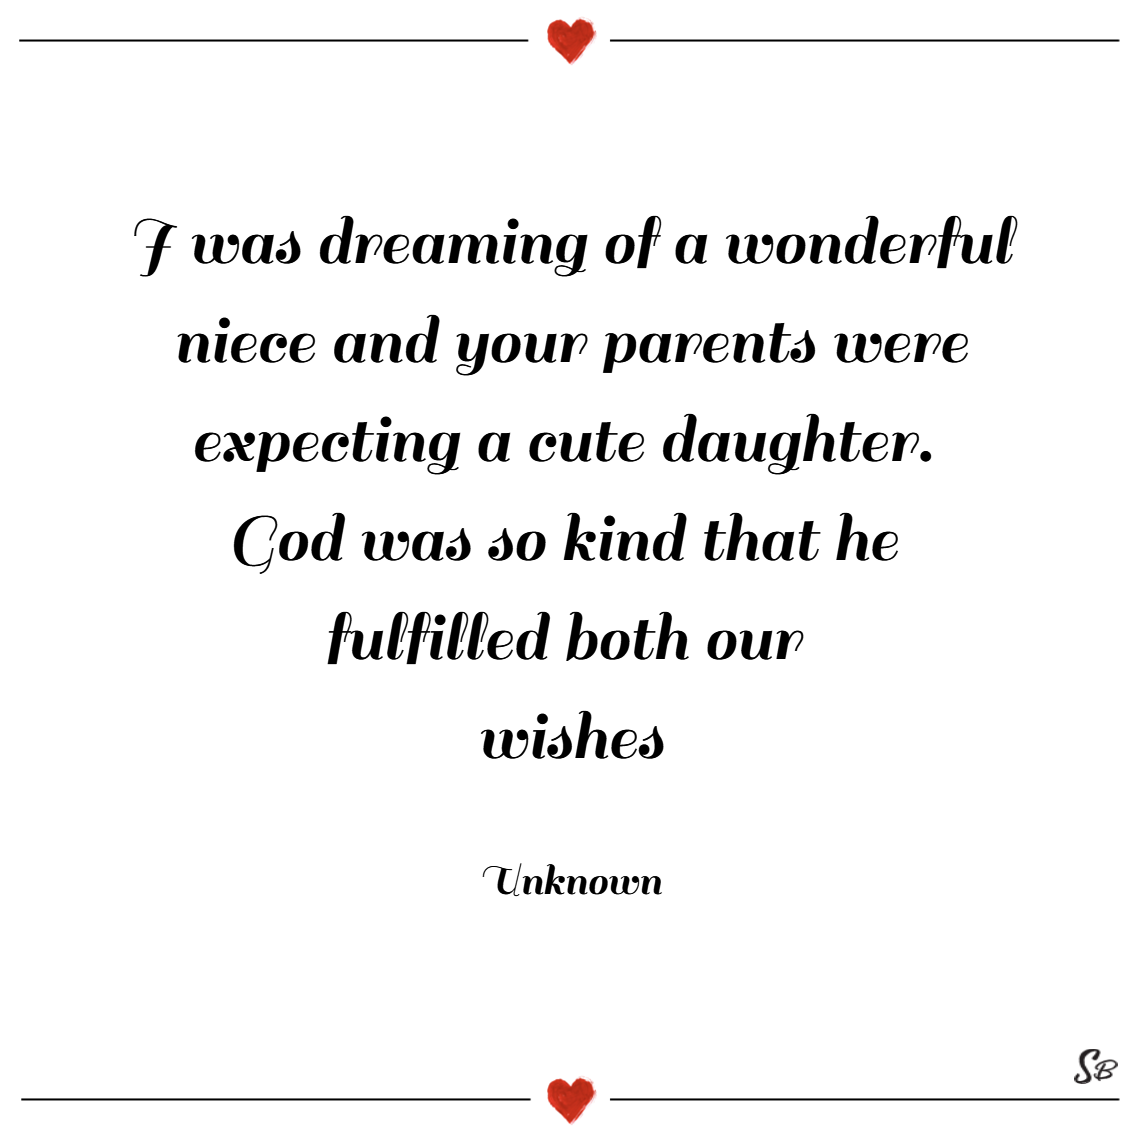 I was dreaming of a wonderful niece and your parents were expecting a cute daughter. god was so kind that he fulfilled both our wishes. – unknown